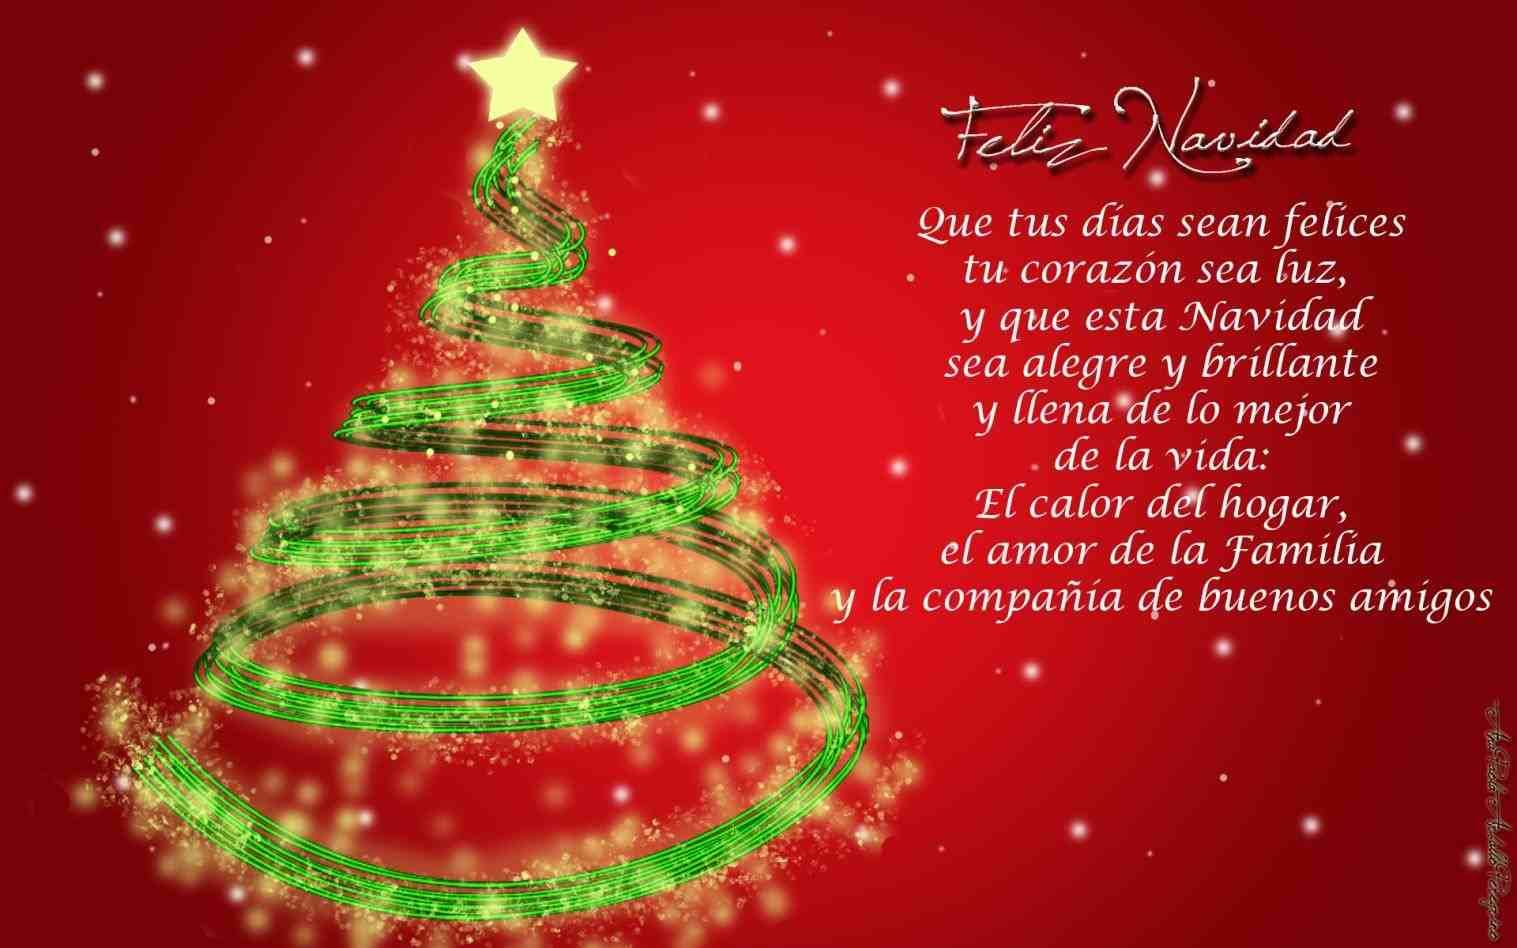 New post merry christmas to you and your family in spanish xmast new post merry christmas to you and your family in spanish kristyandbryce Images